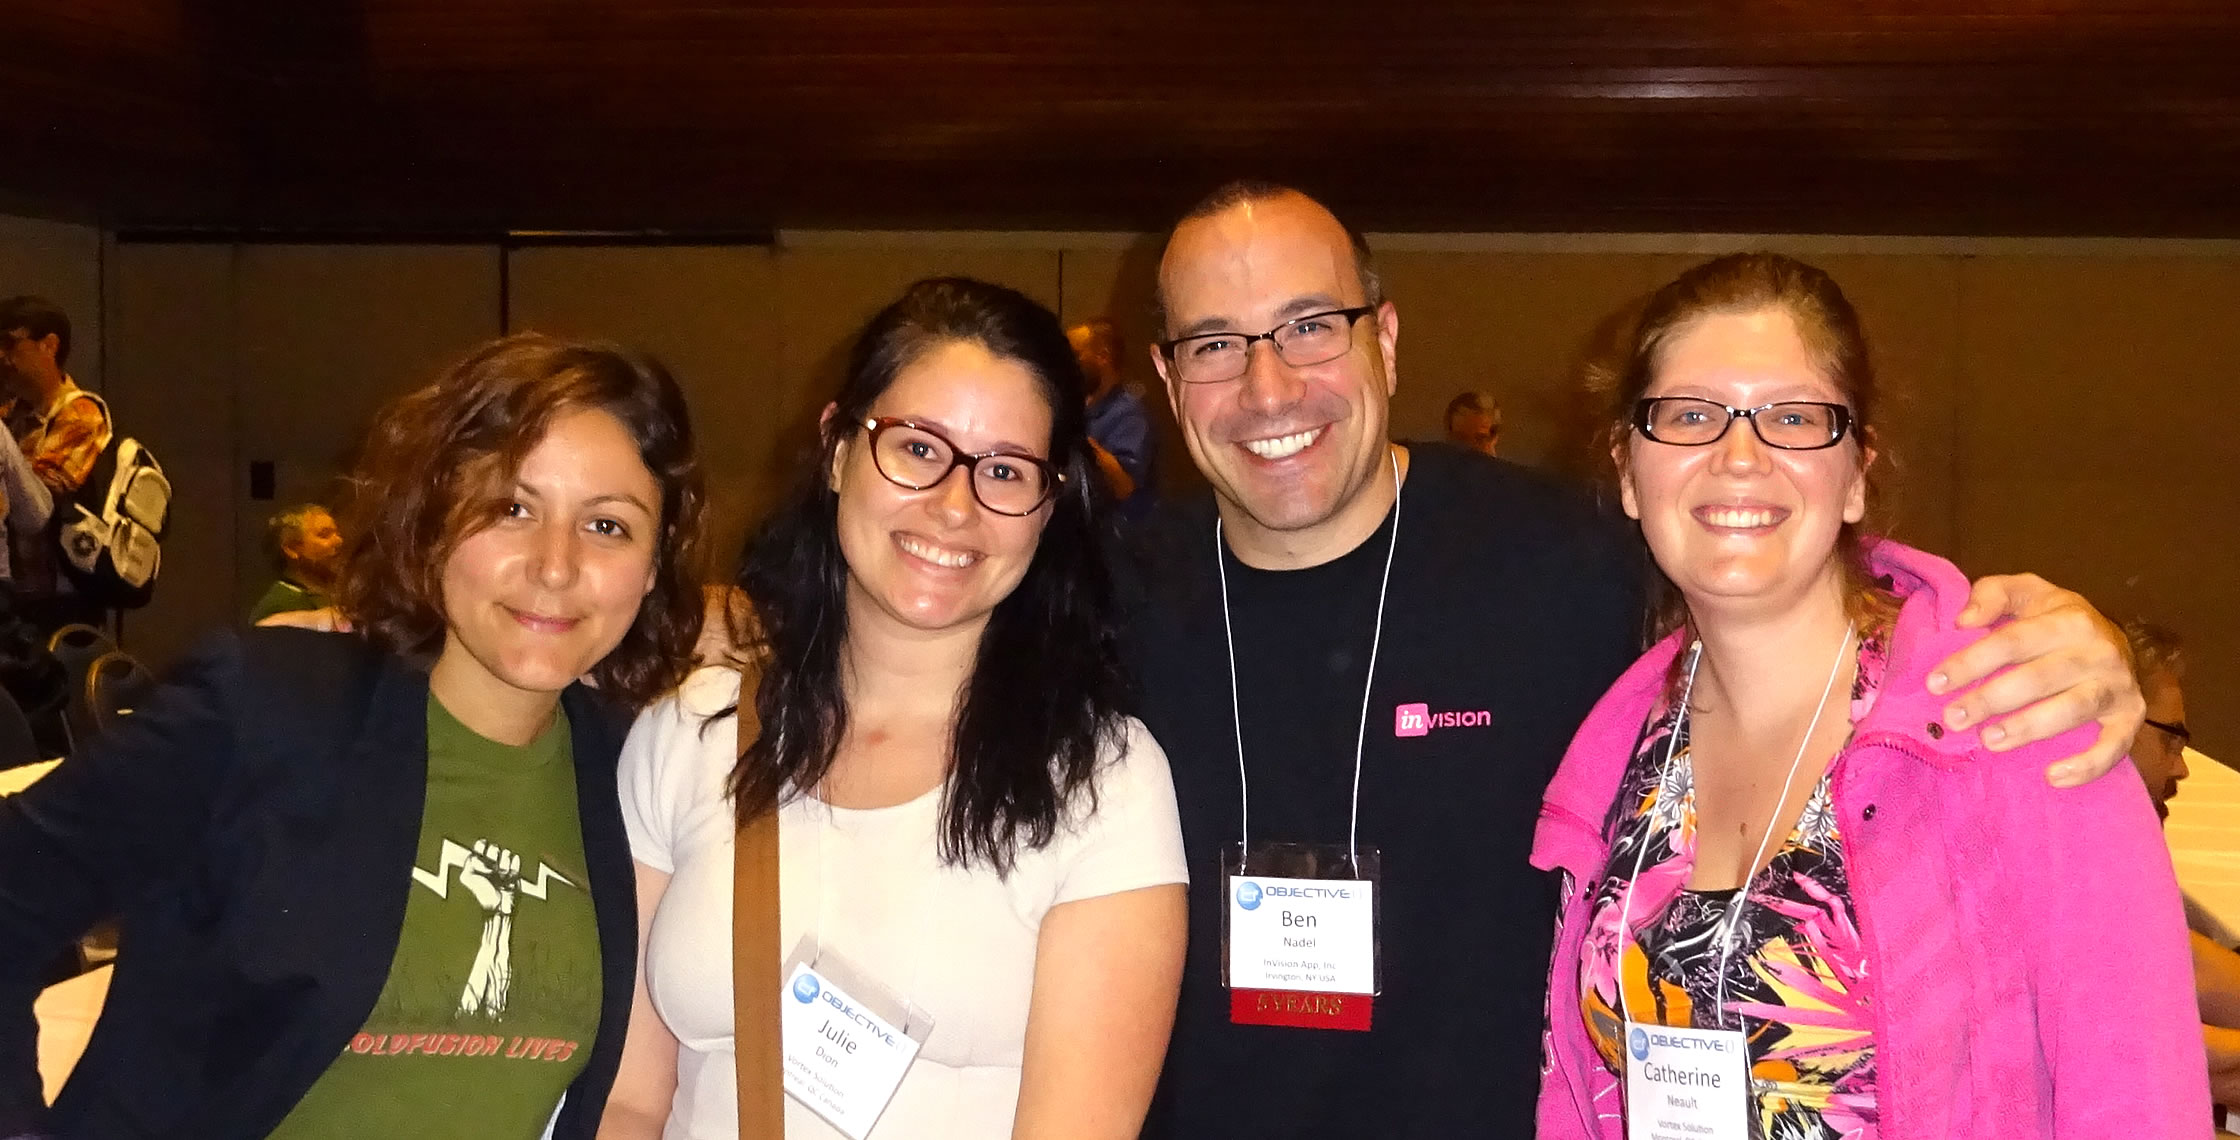 Ben Nadel at cf.Objective() 2017 (Washington, D.C.) with: Valerie Poreaux, Julie Dion, and Catherine Neault